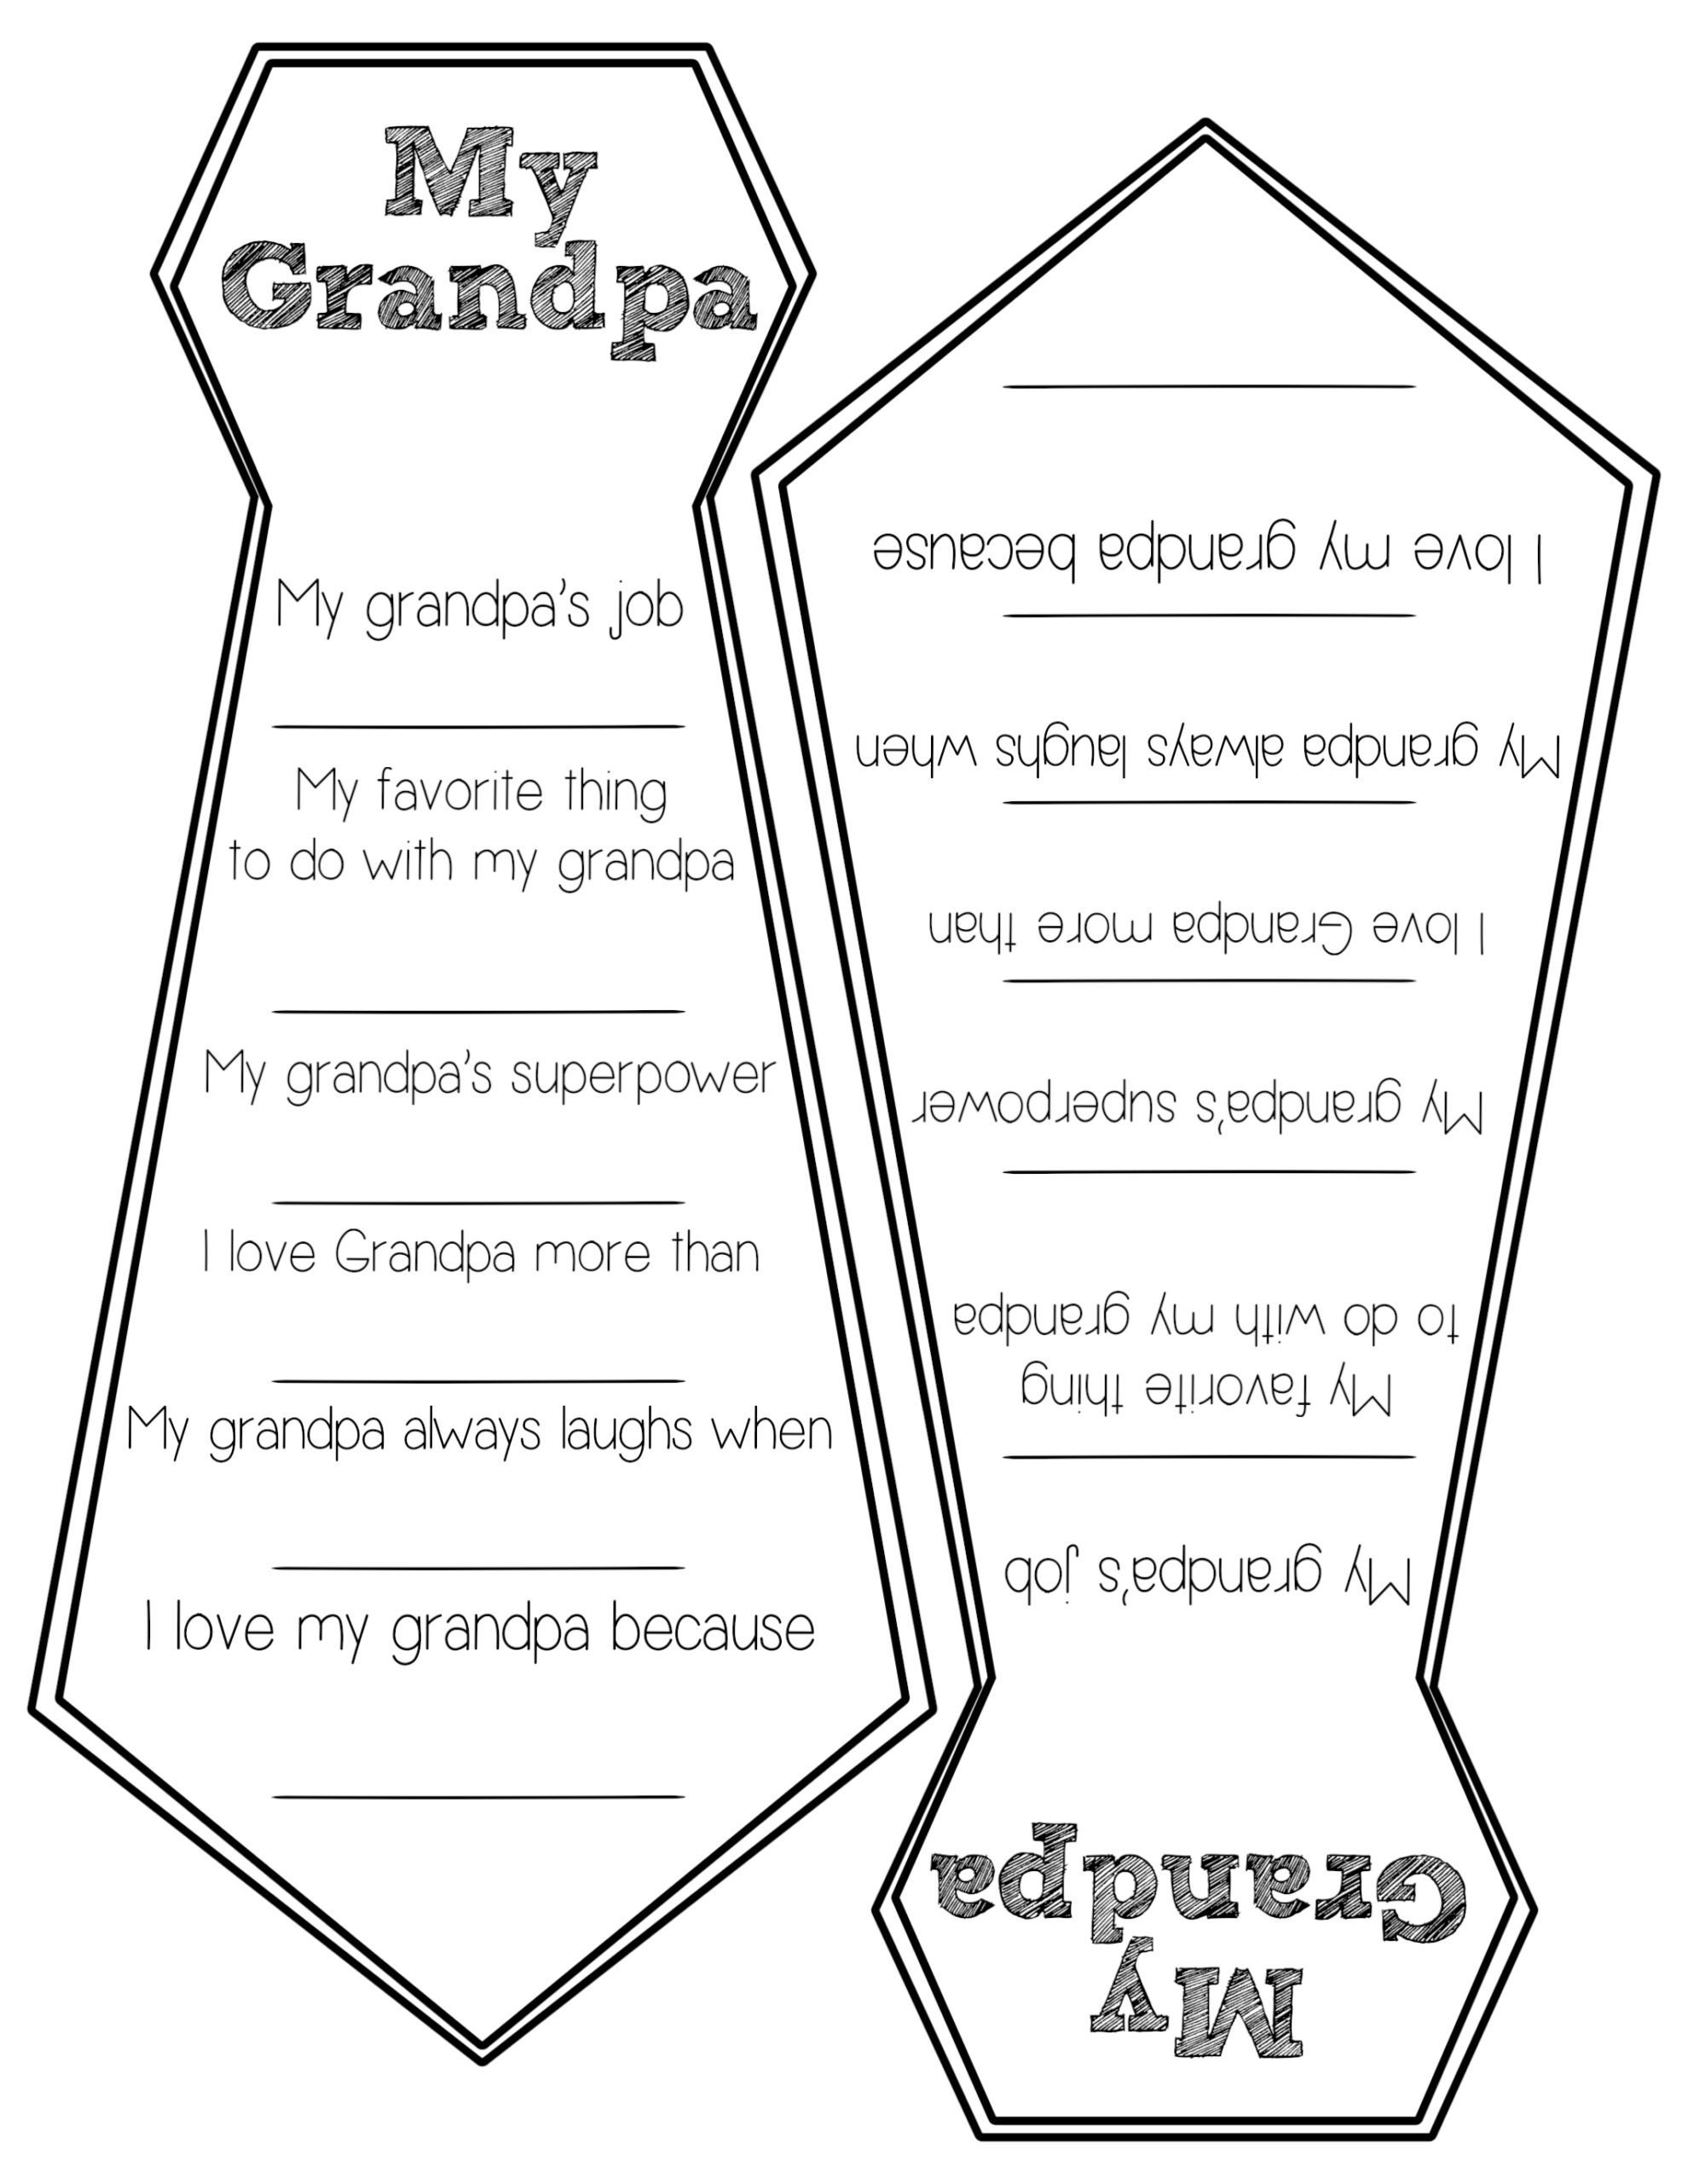 Father's Day Free Printable Cards  Paper Trail Design Intended For Fathers Day Card Template